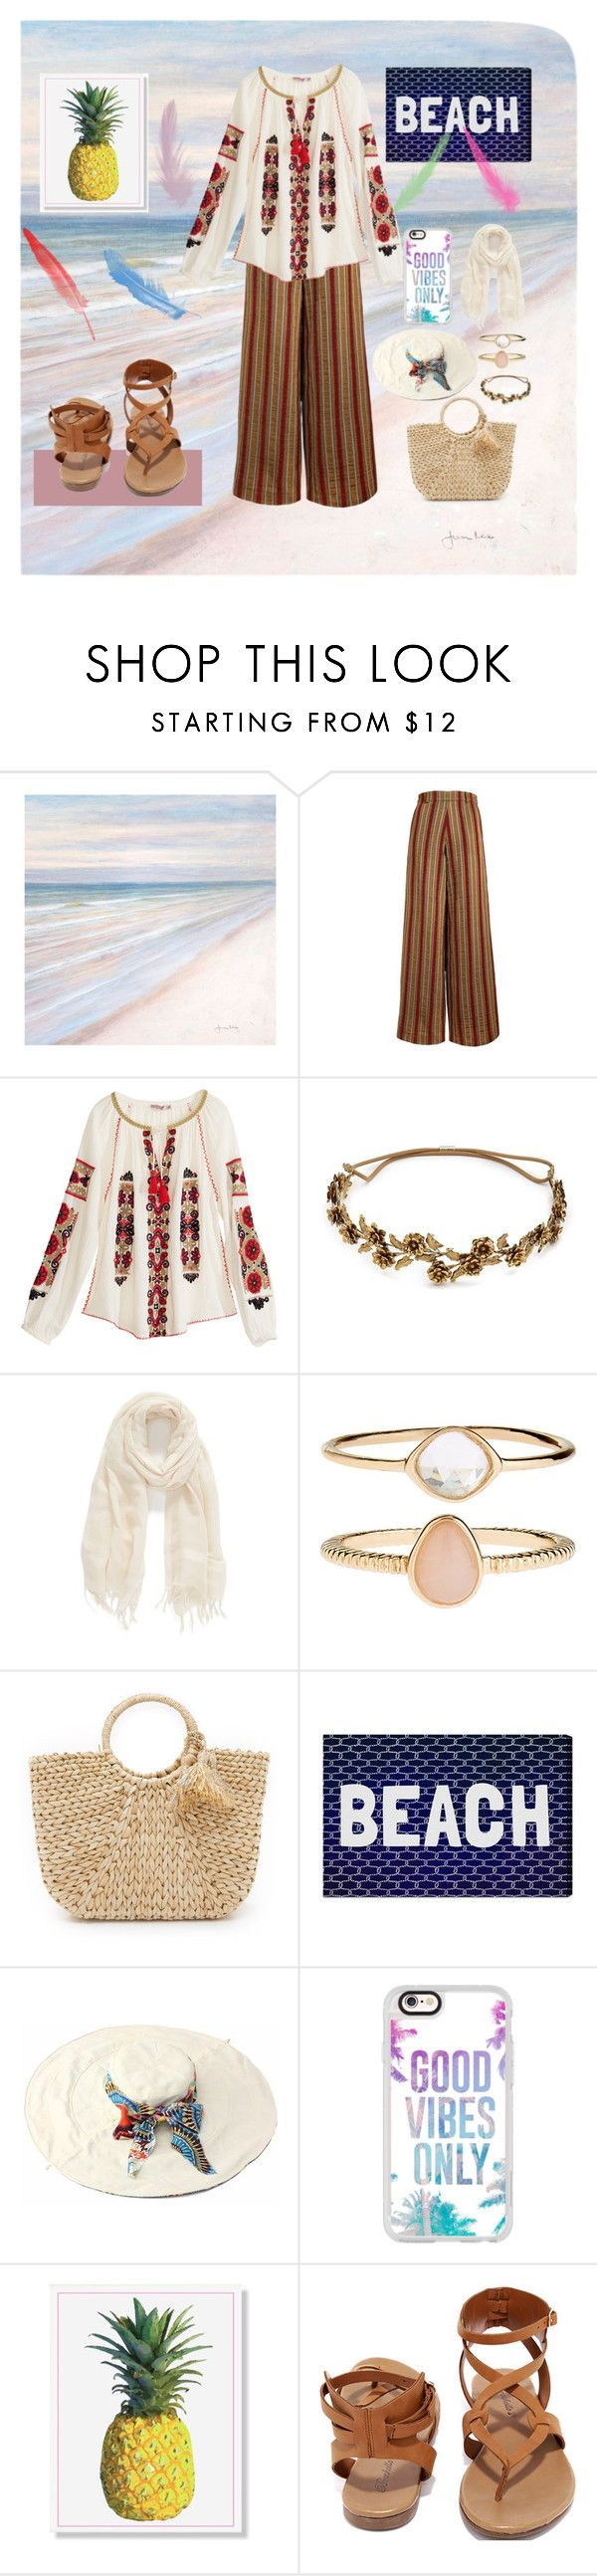 """Hijab Summer Outfit"" by datenusa on Polyvore featuring Calypso St. Barth, Jennifer Behr, Caslon, Accessorize, Hat Attack, Oliver Gal Artist Co., Casetify and Breckelle's"